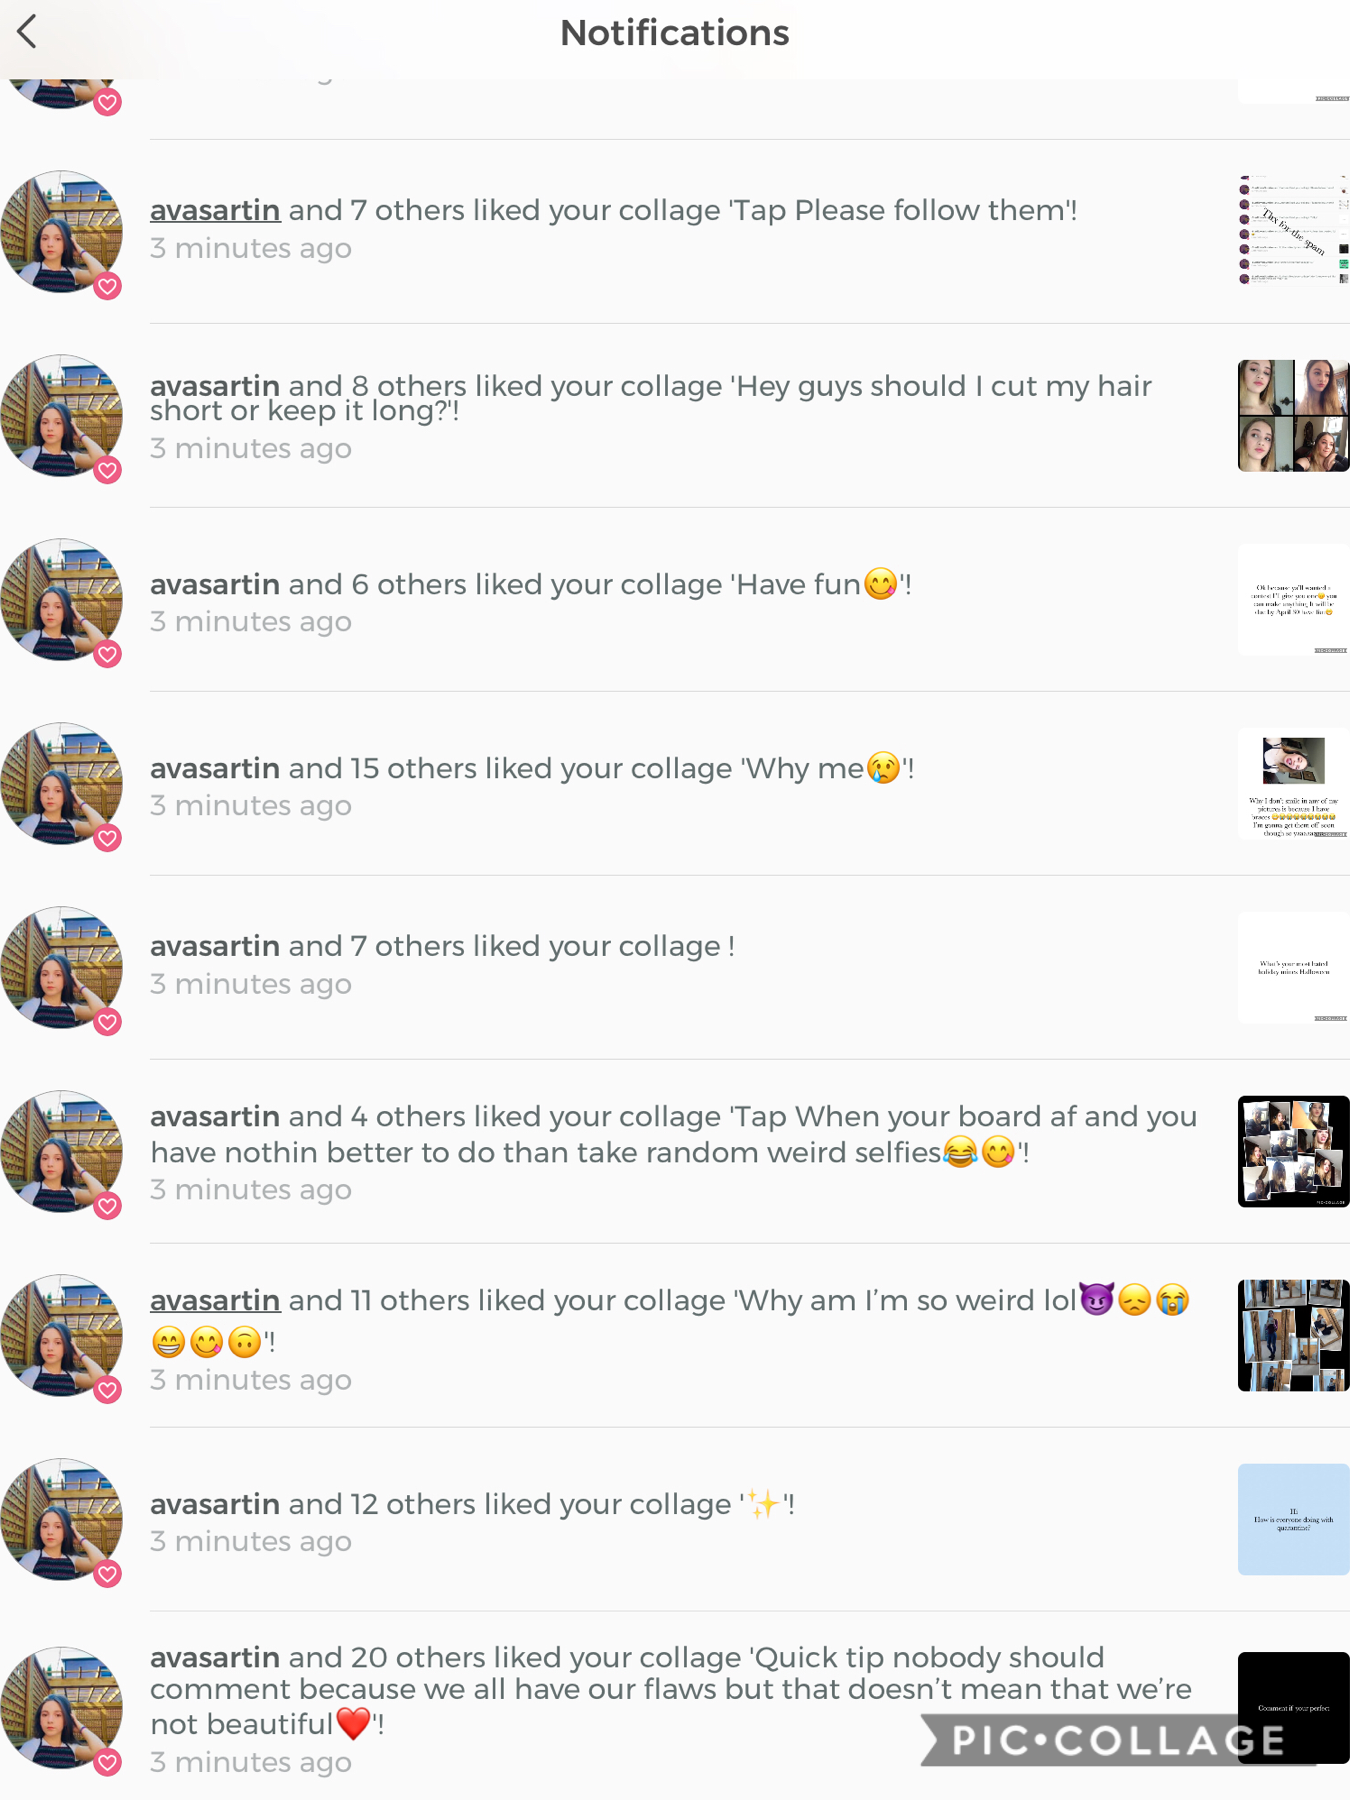 Thx for the spam